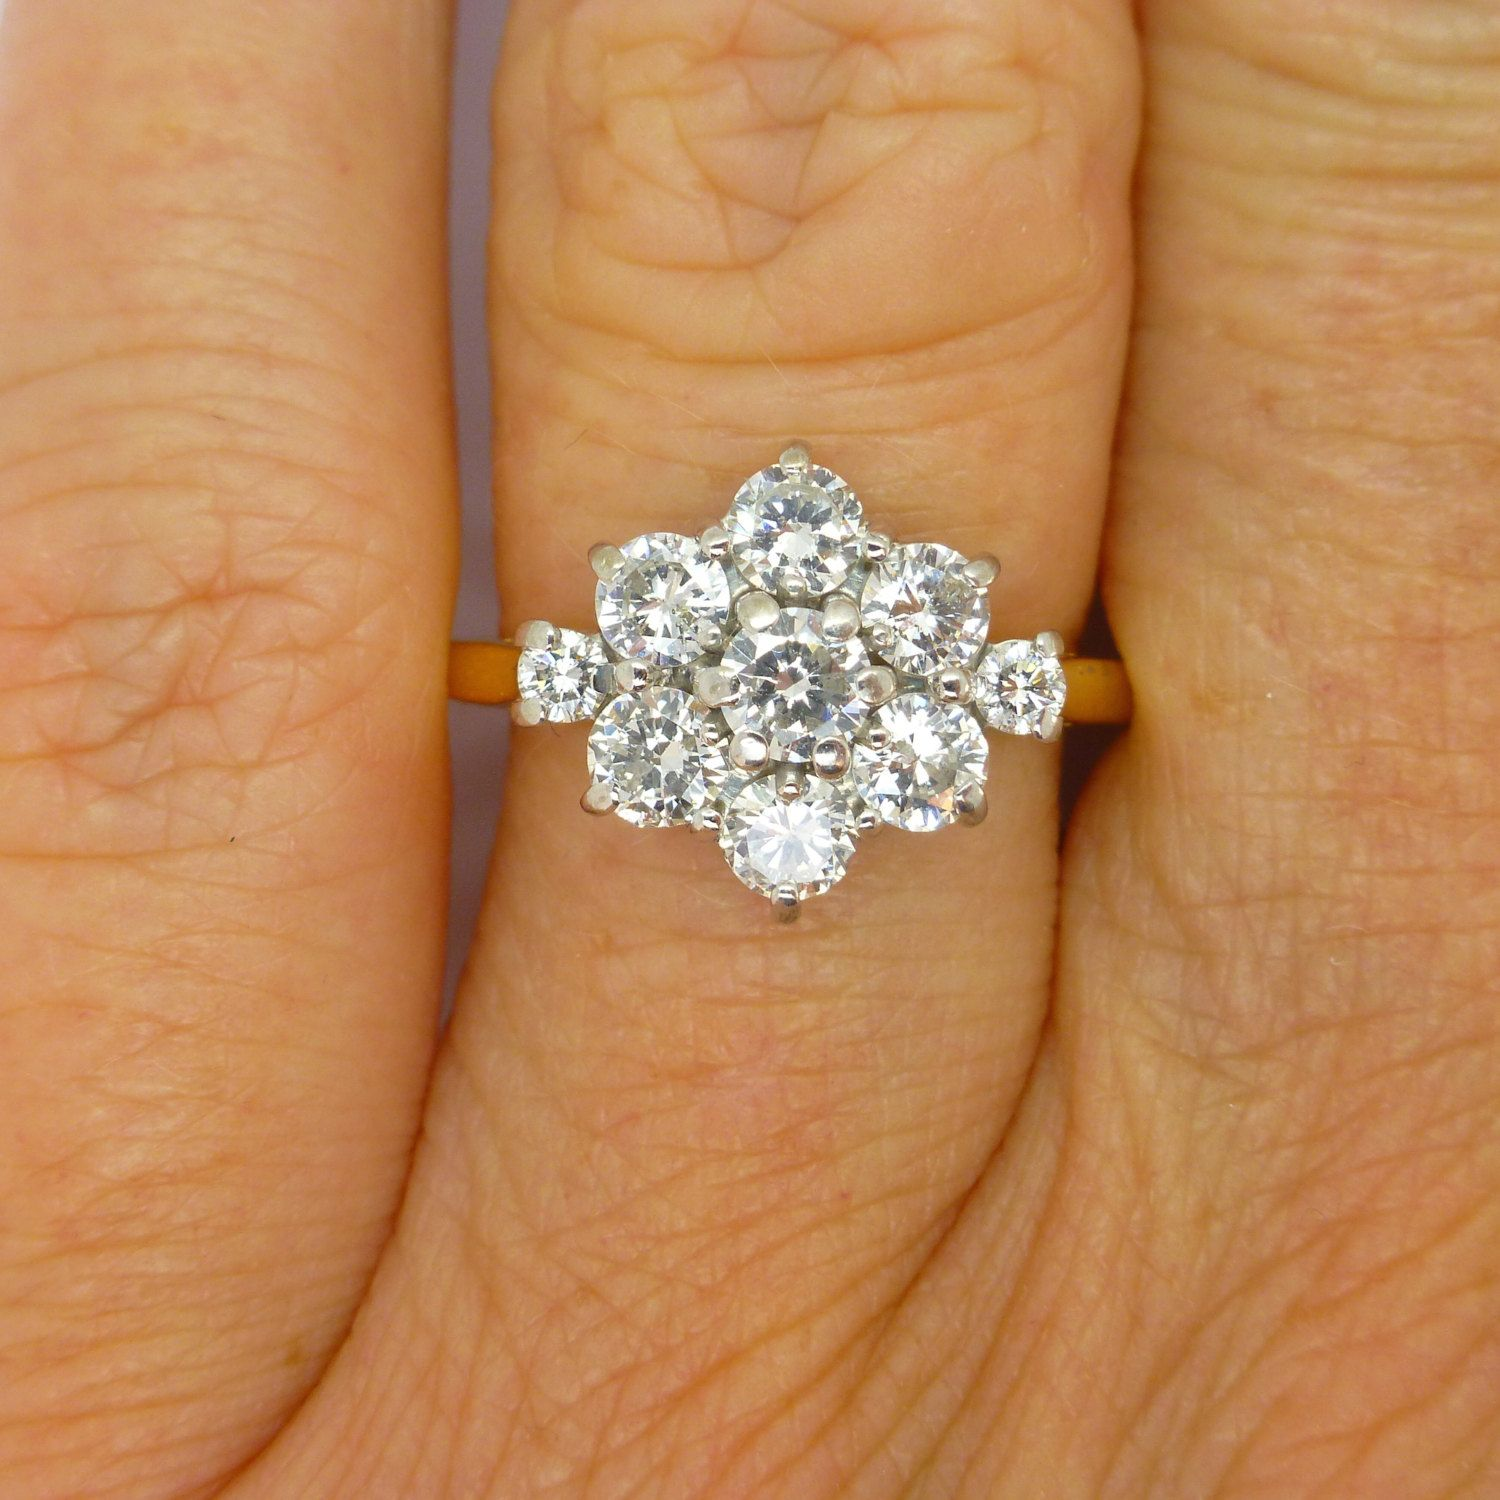 trilogy ring gallery fresh m rings best bands estate antique engagement vintage of diamond